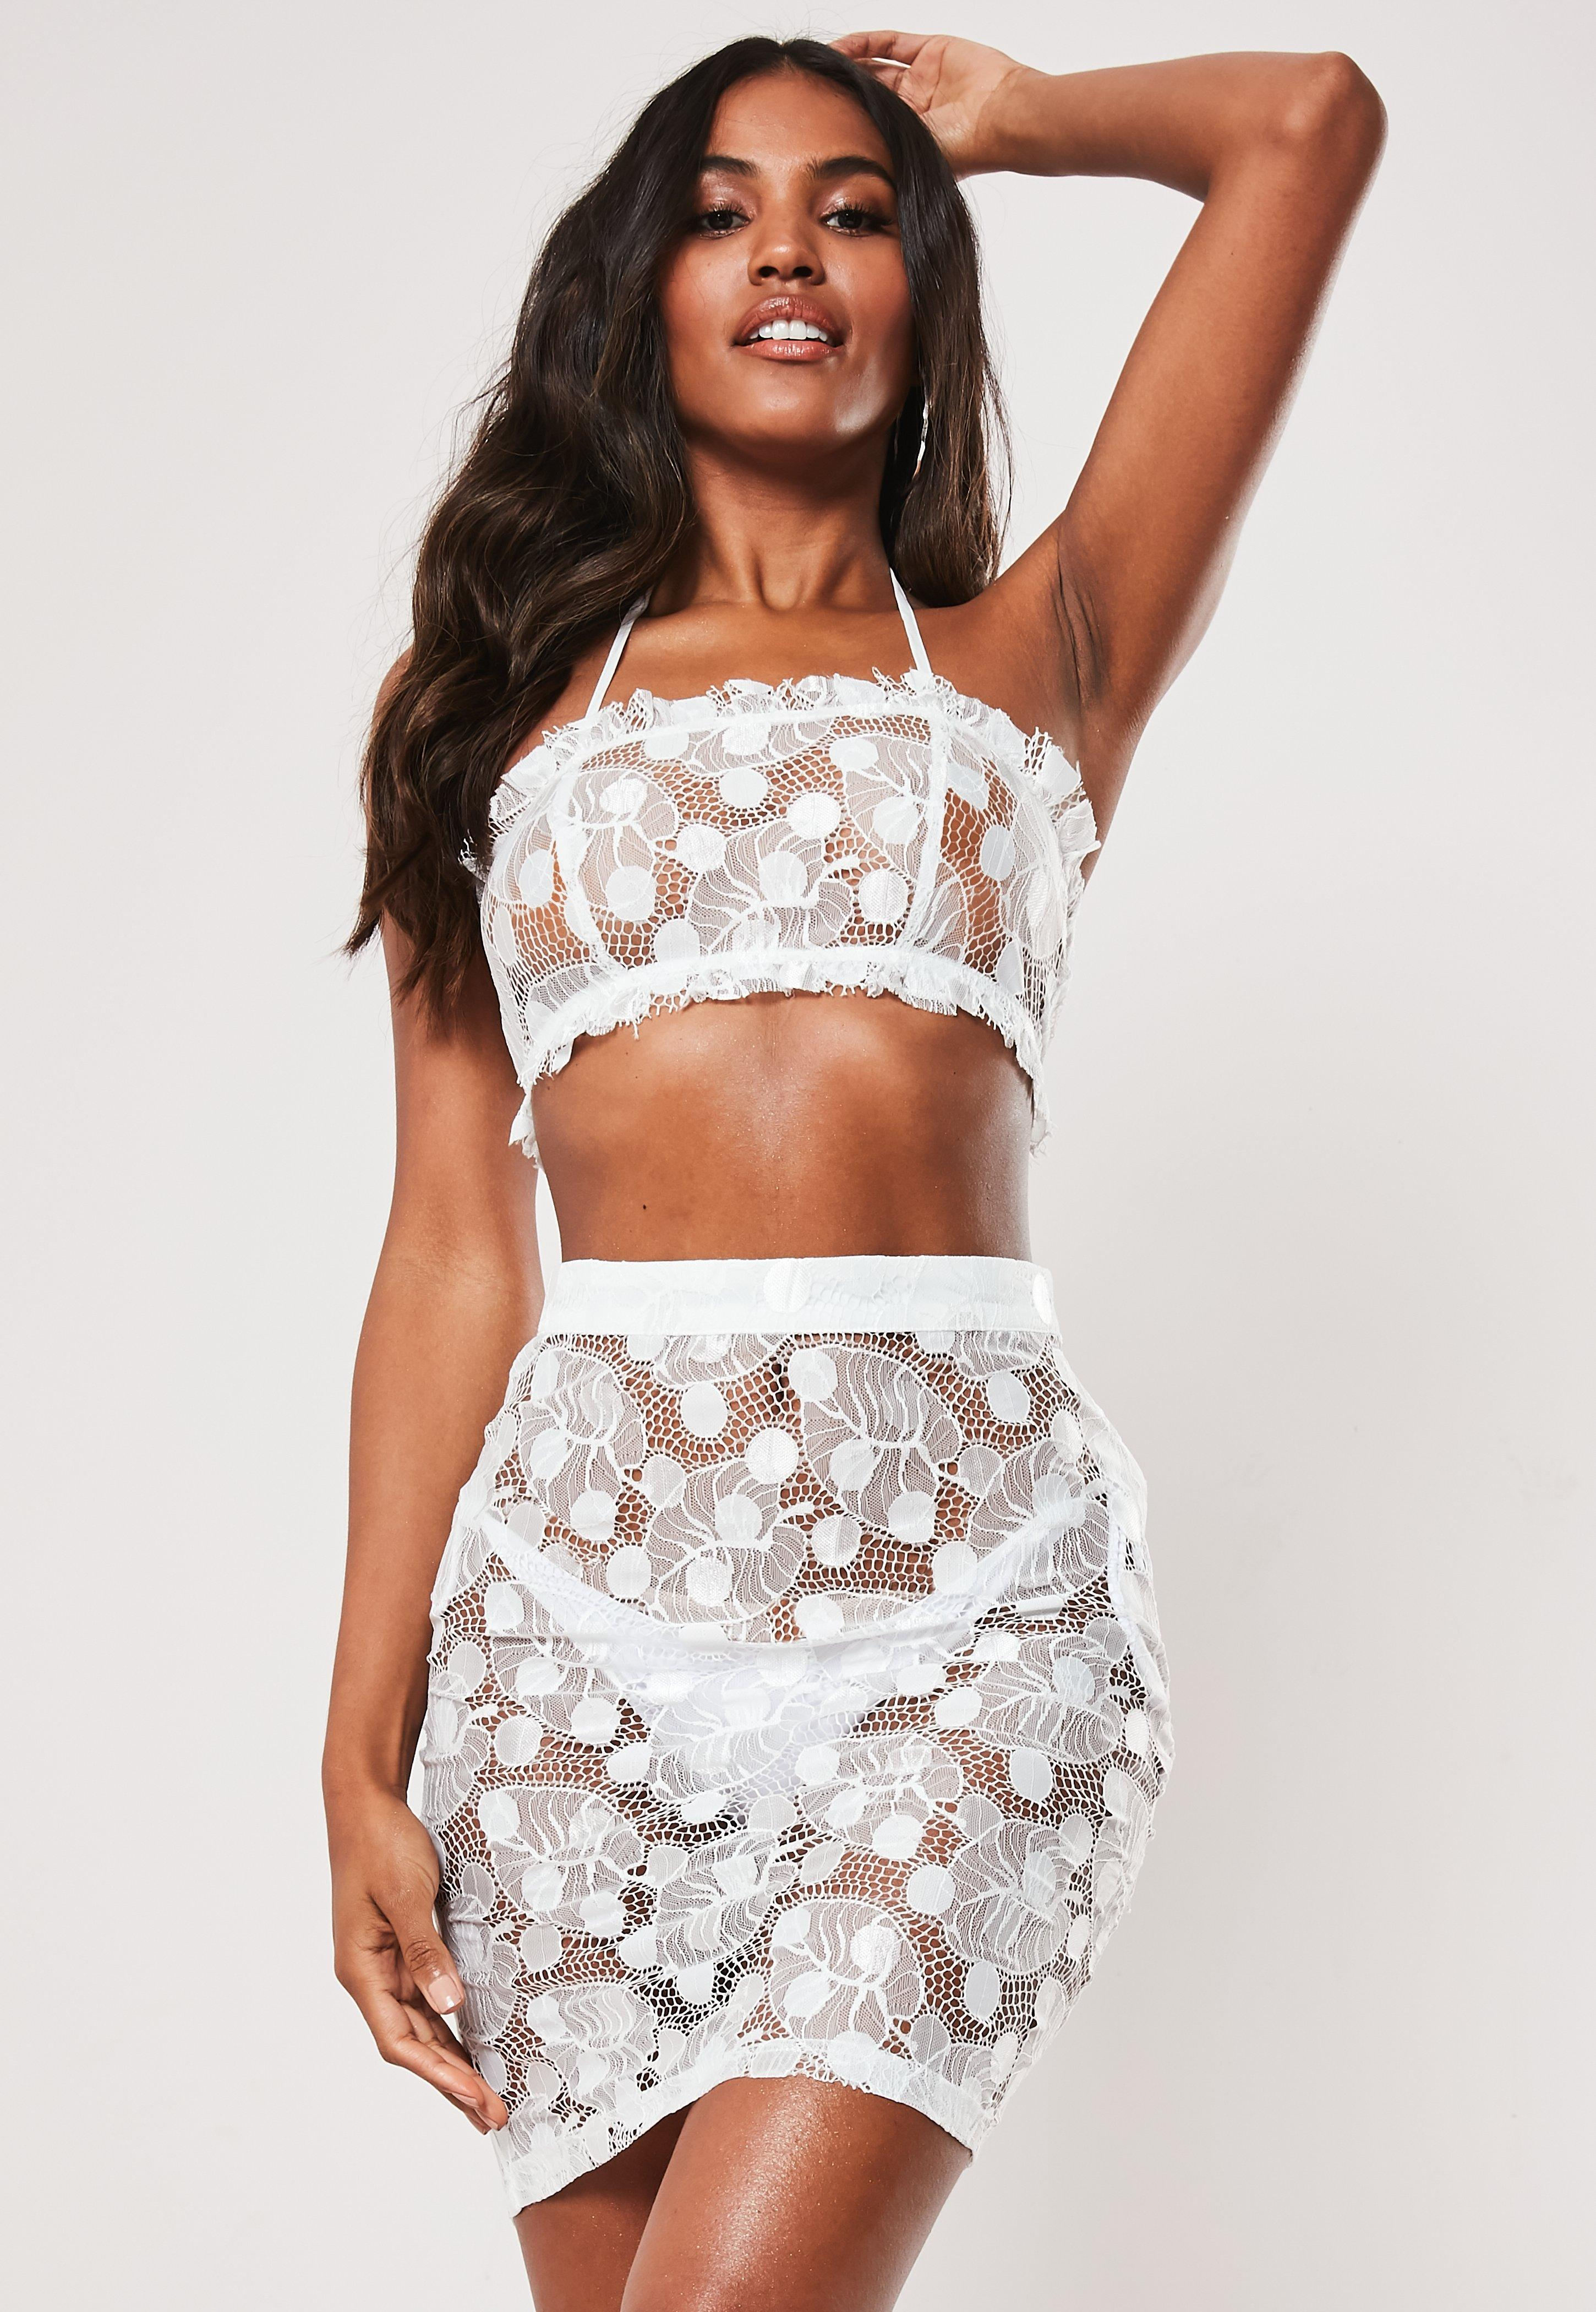 83417b8f13c Co-ords | Two Piece Outfits & Co-ordinate Sets - Missguided IE